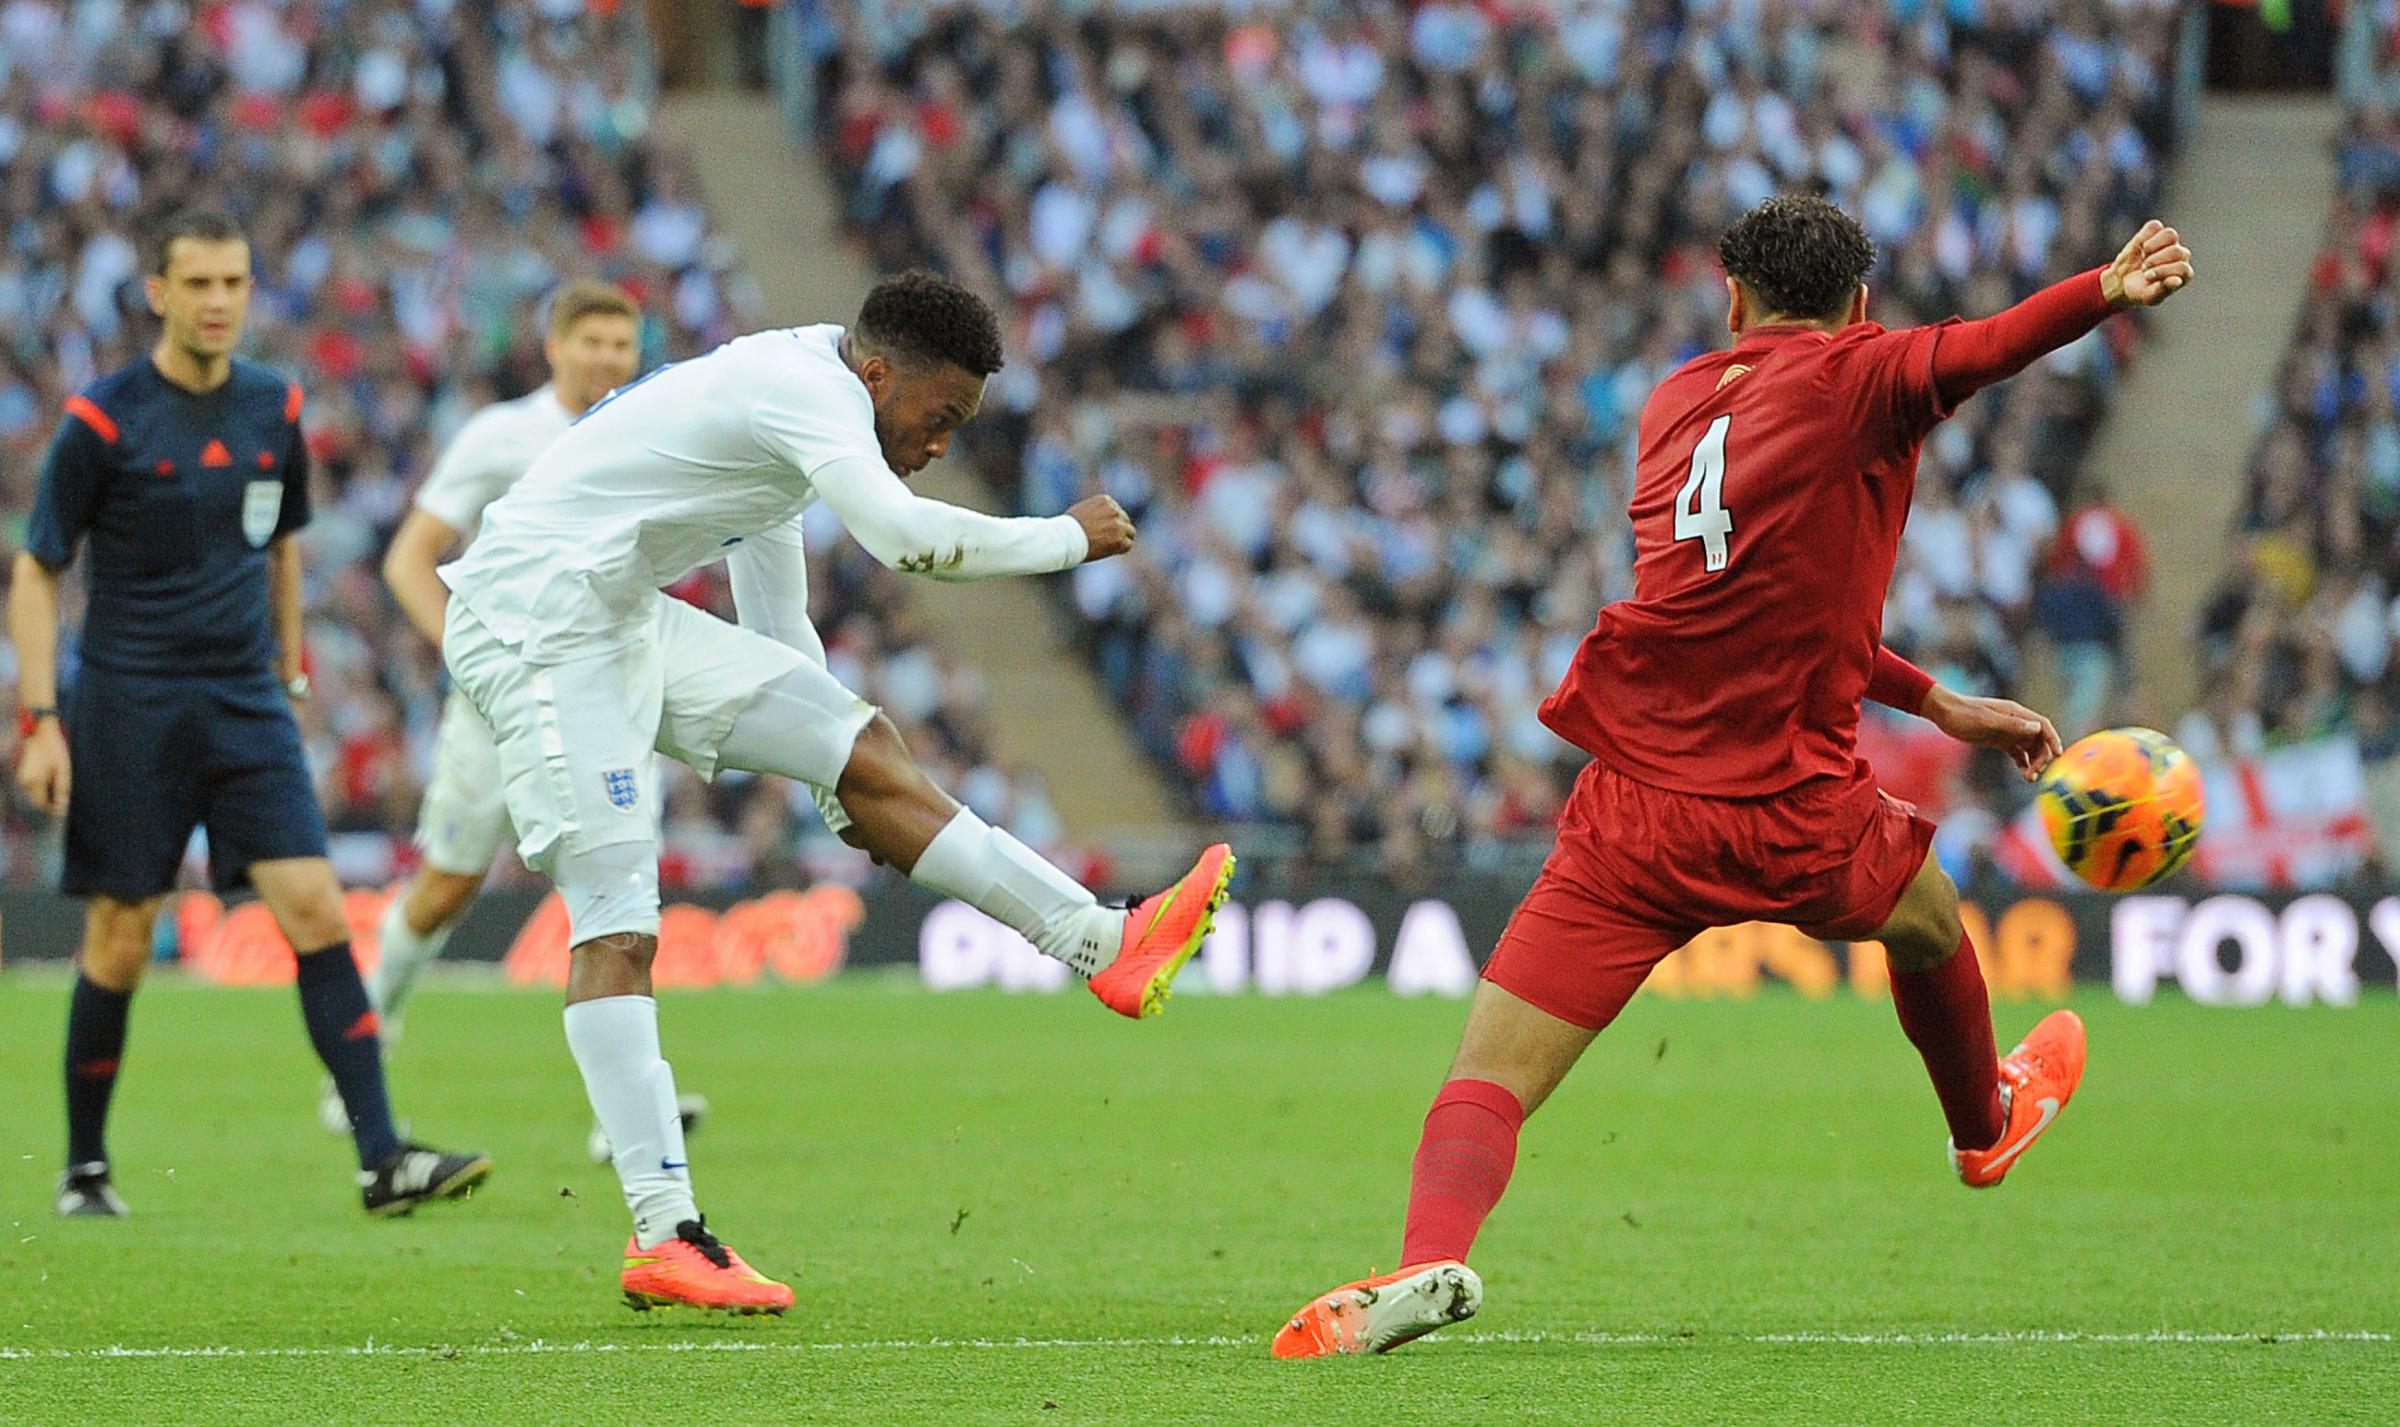 DREAM STRIKE: Daniel Sturridge curls home England's opening goal during Friday's 3-0 victory over Peru